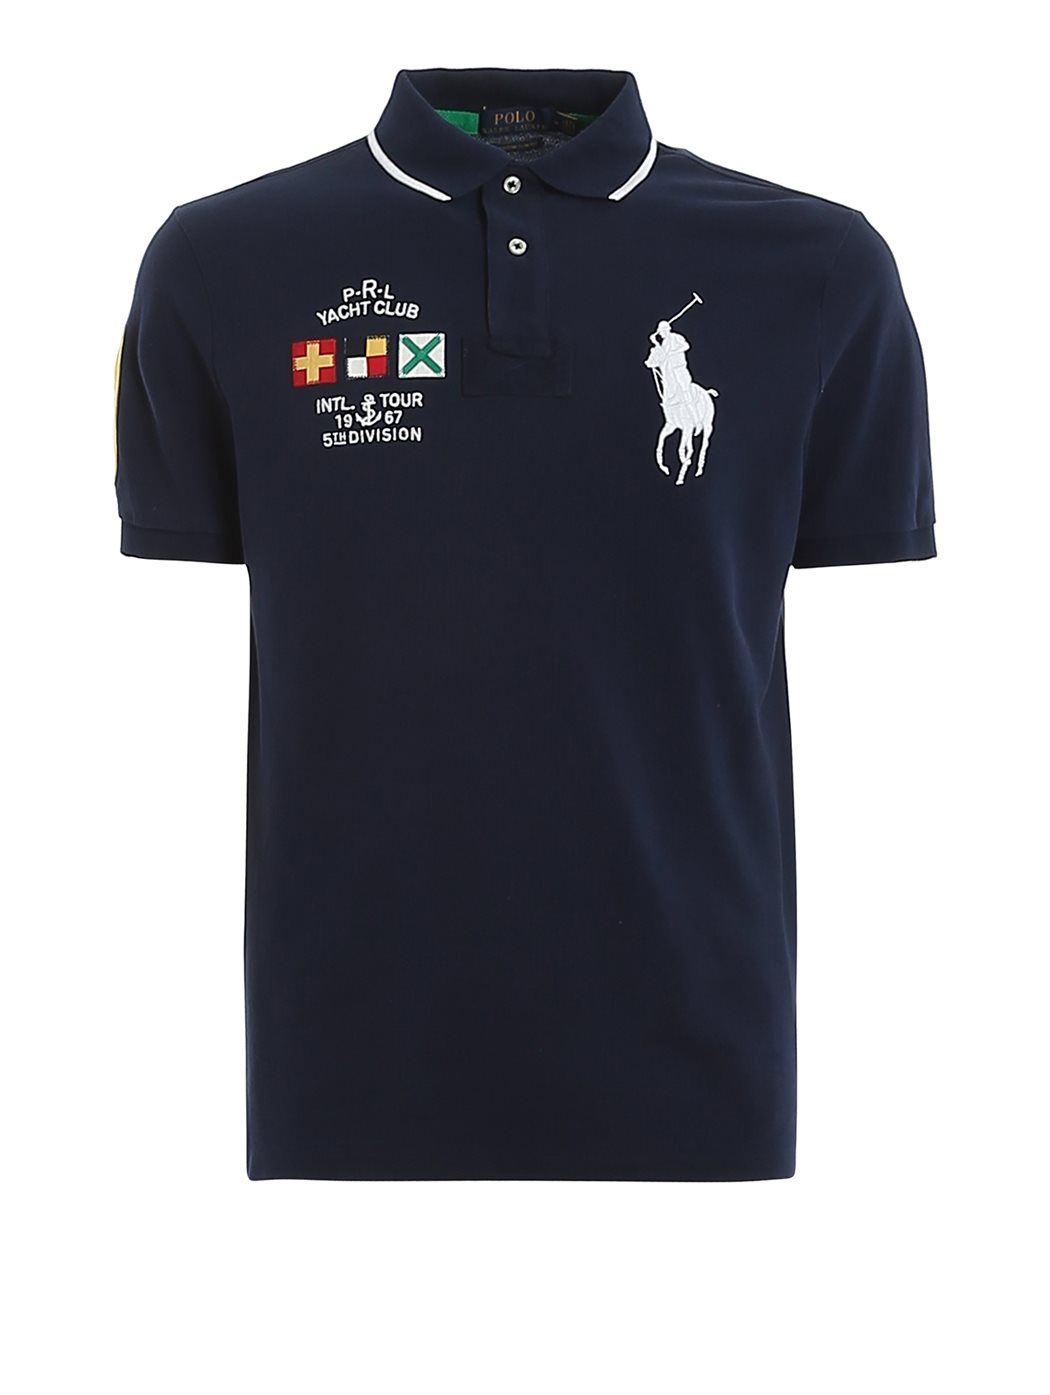 POLO RALPH LAUREN UOMO 71079 001 POLO